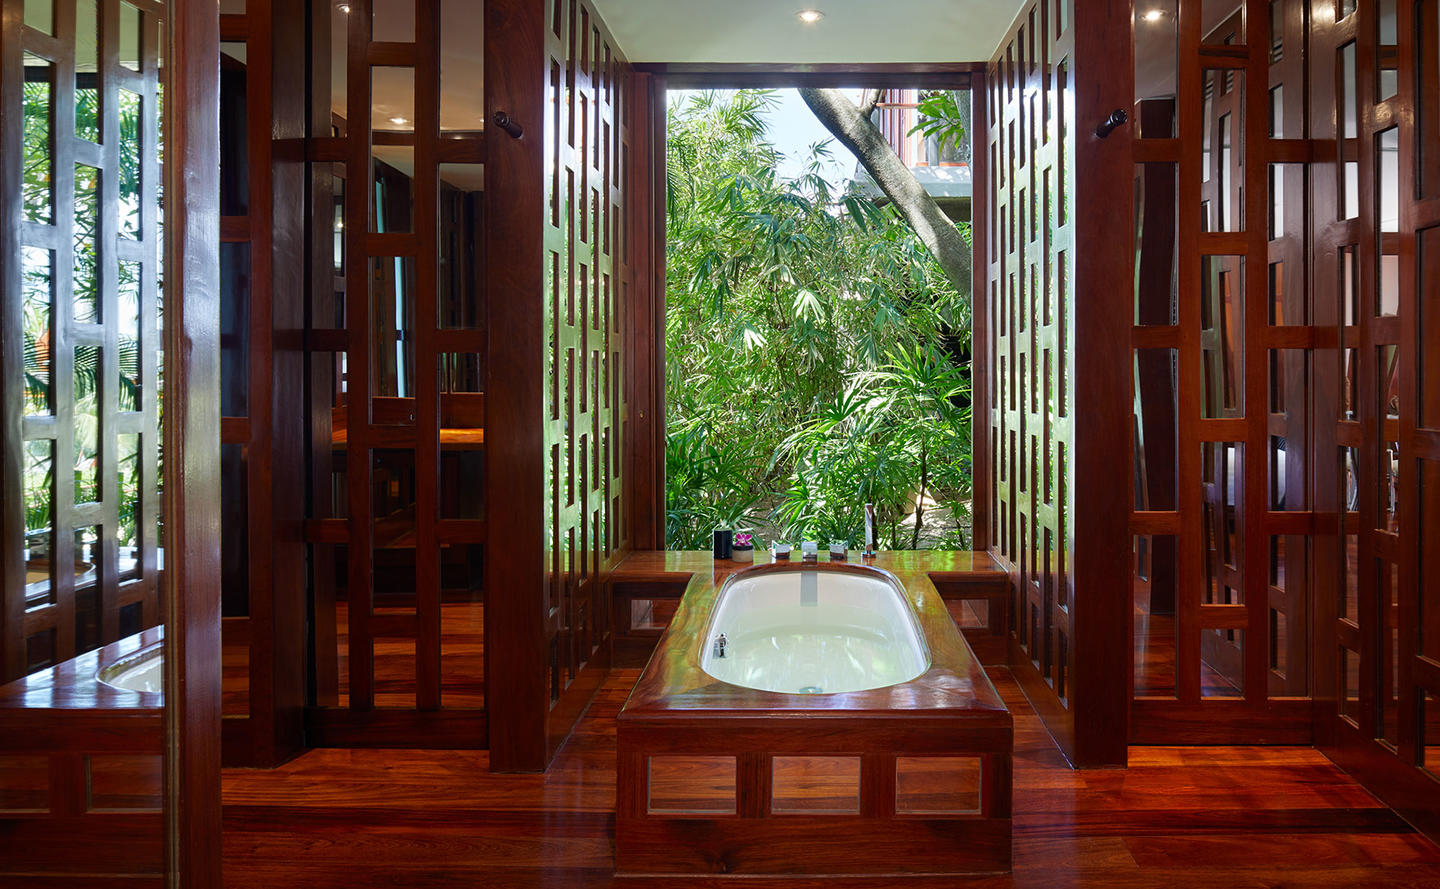 Bathroom, Two-Bedroom Garden Villa, Amanpuri, Thailand